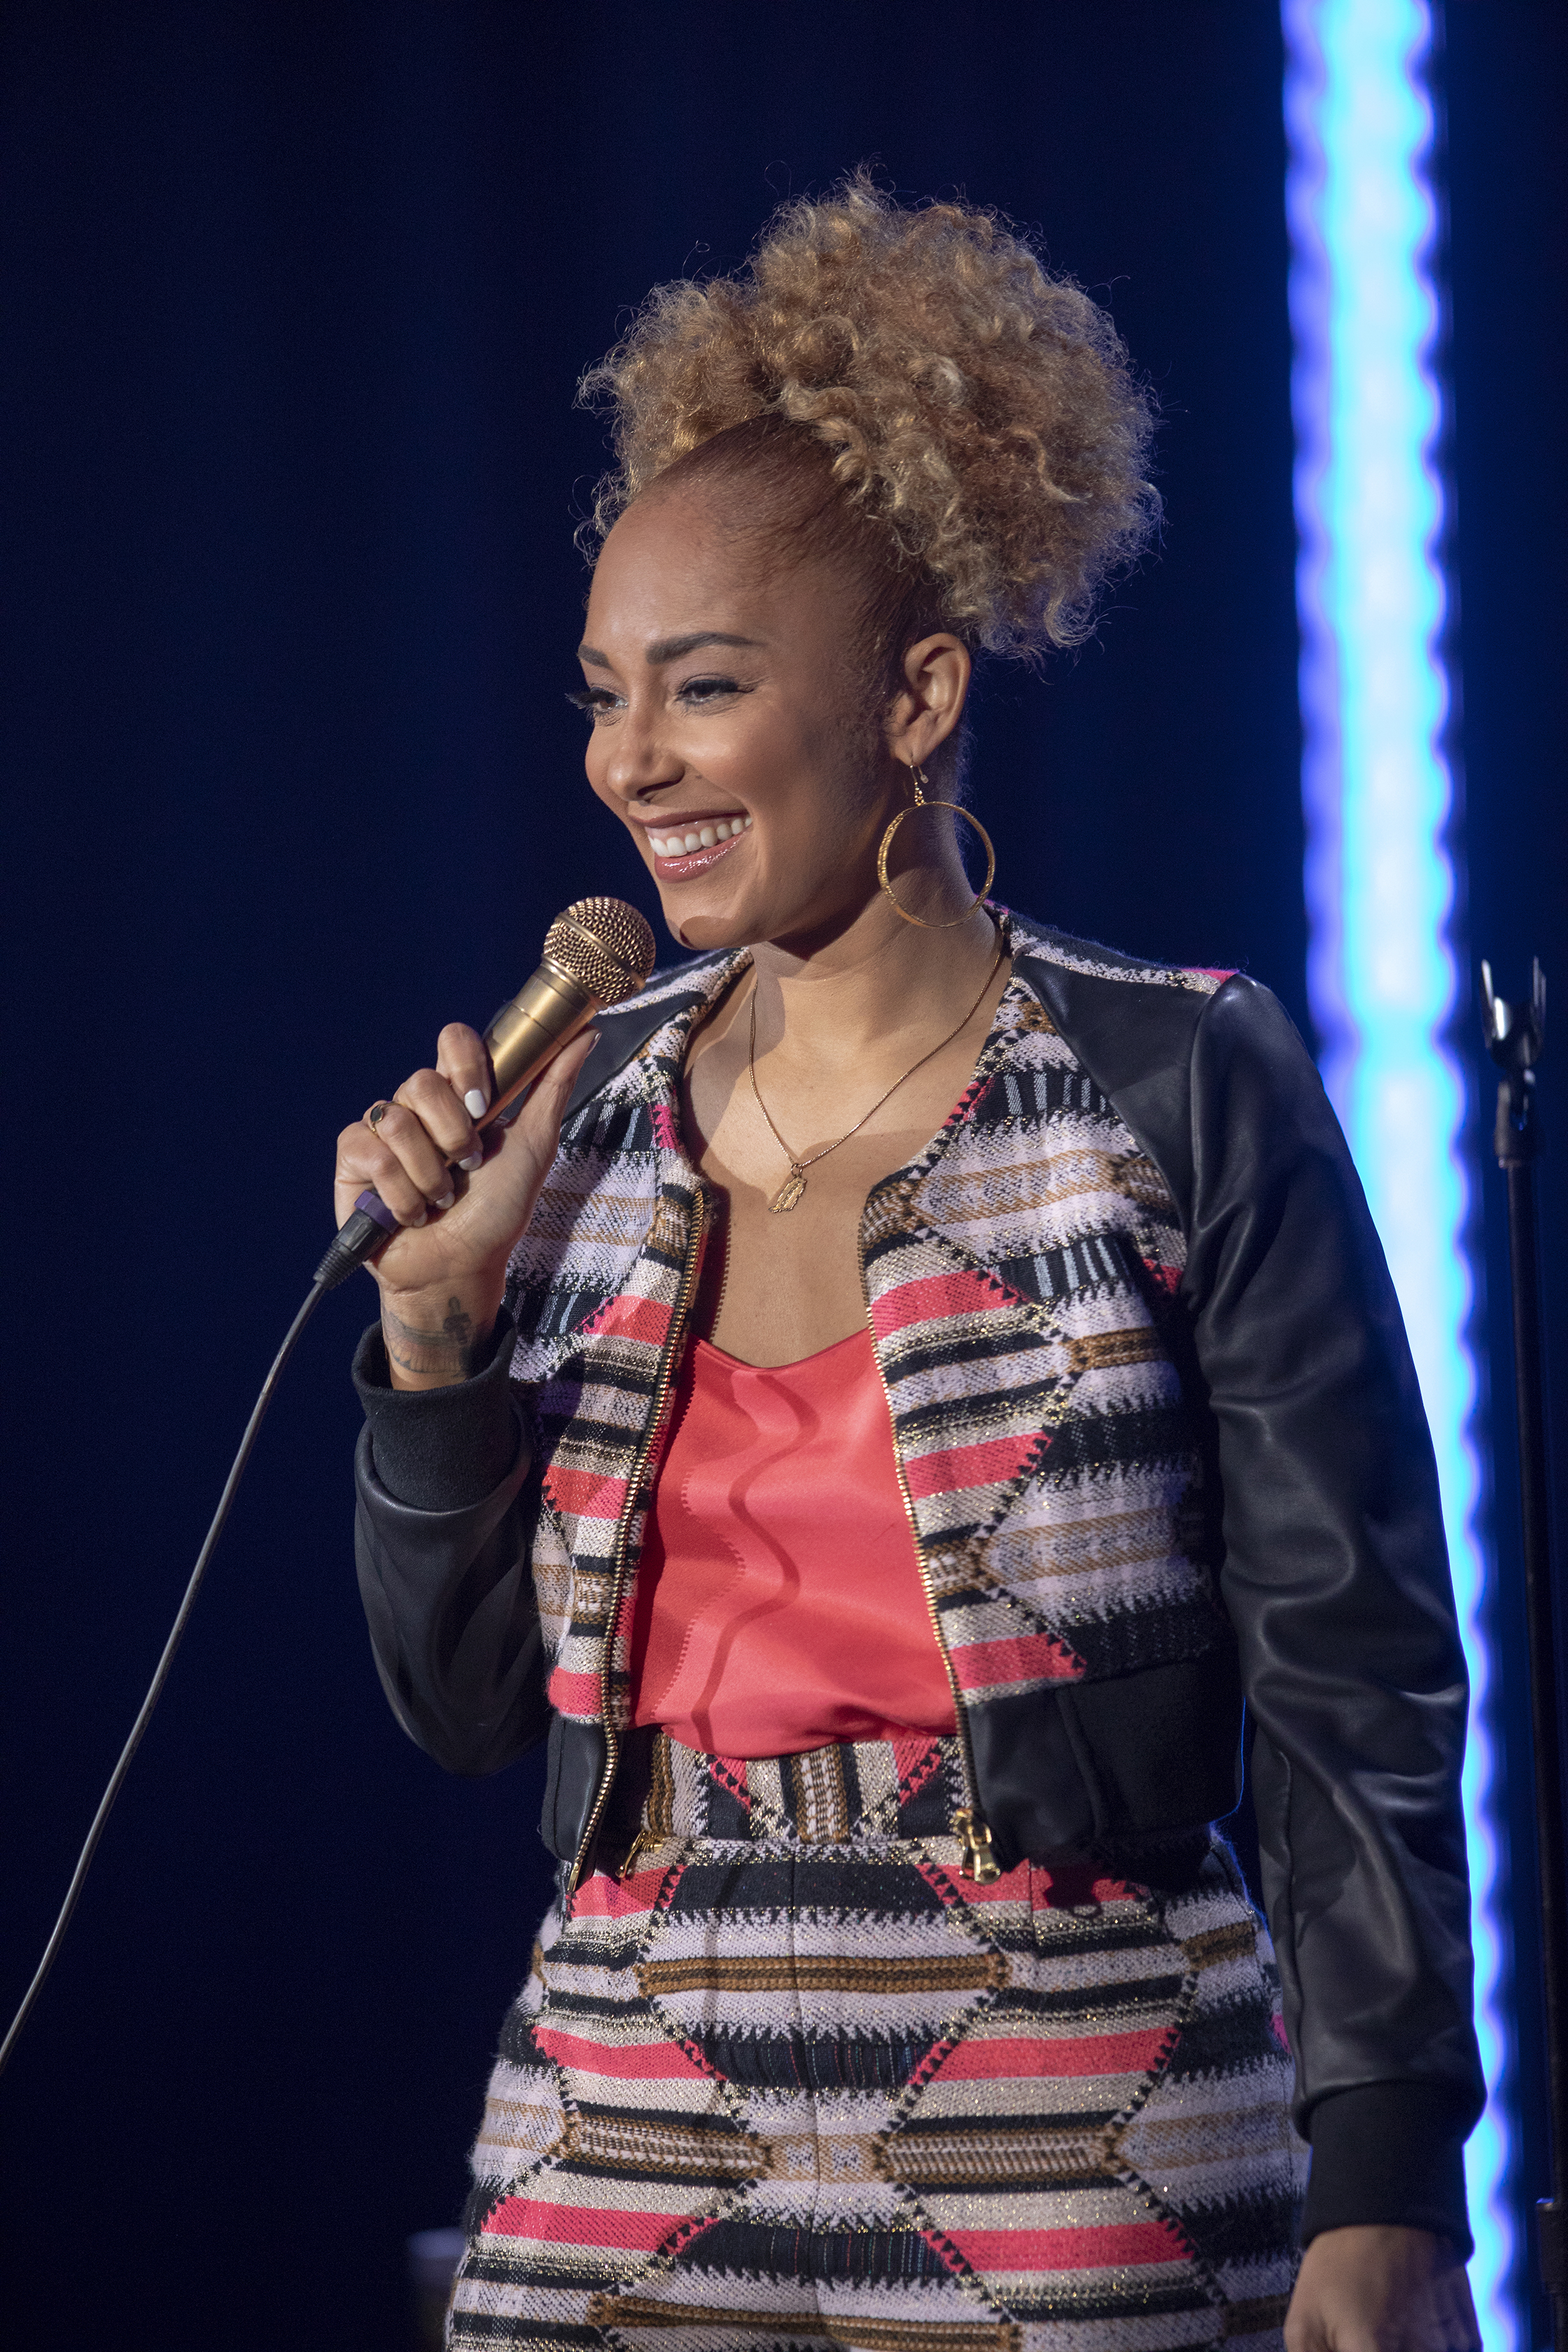 A Series Regular As Tiffany On Insecure Amanda Seales Is Currently Touring With Smart Funny Black The Live Comedic Competition Show She Created